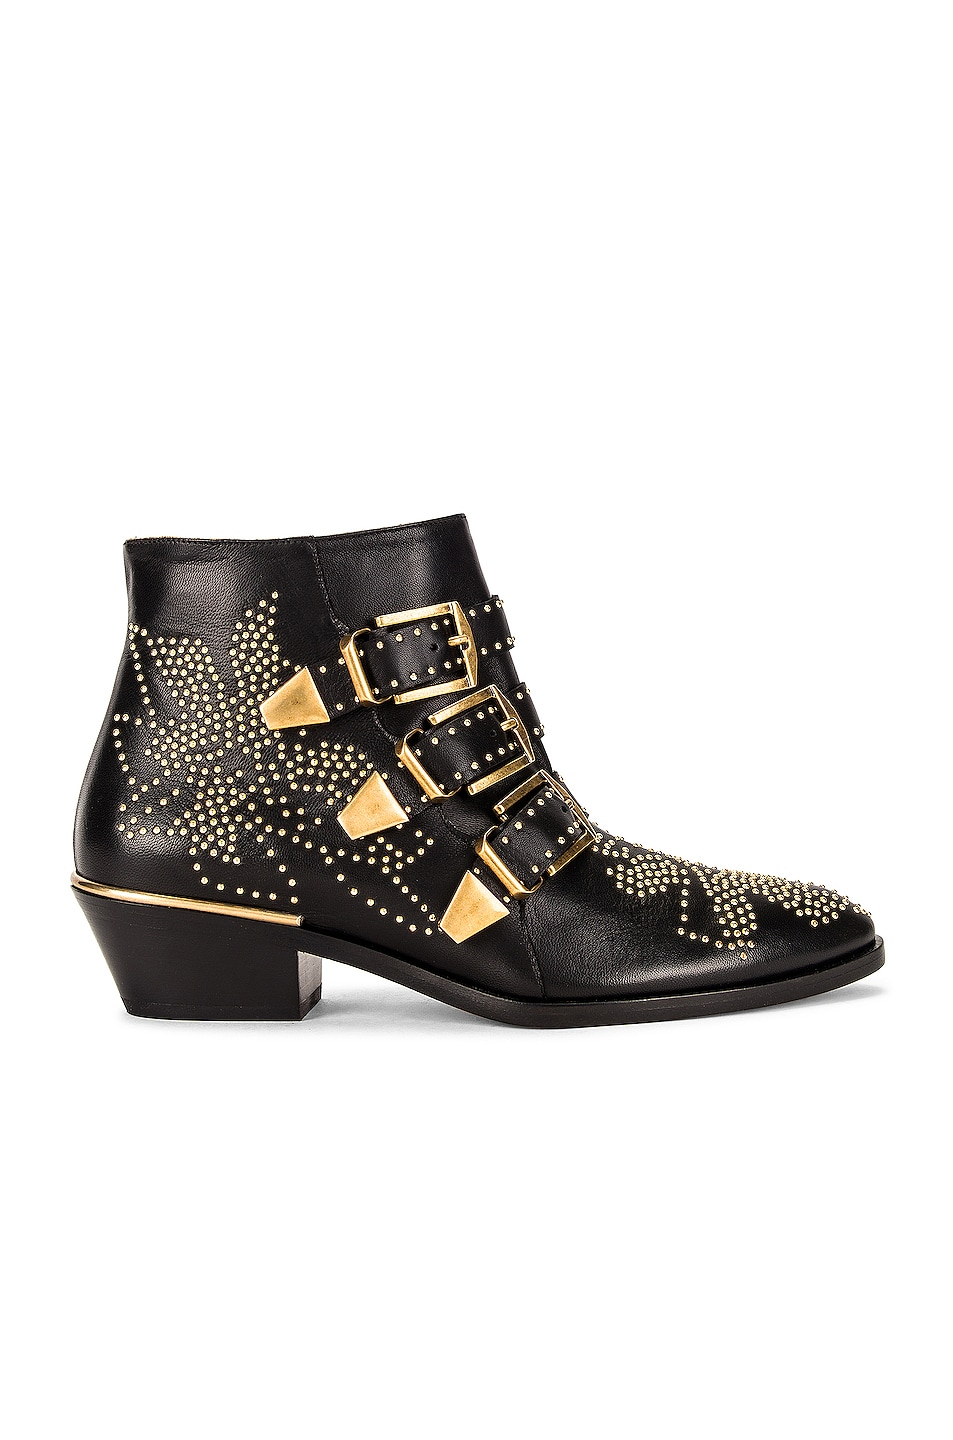 Image 1 of Chloe Susanna Leather Studded Booties in Black